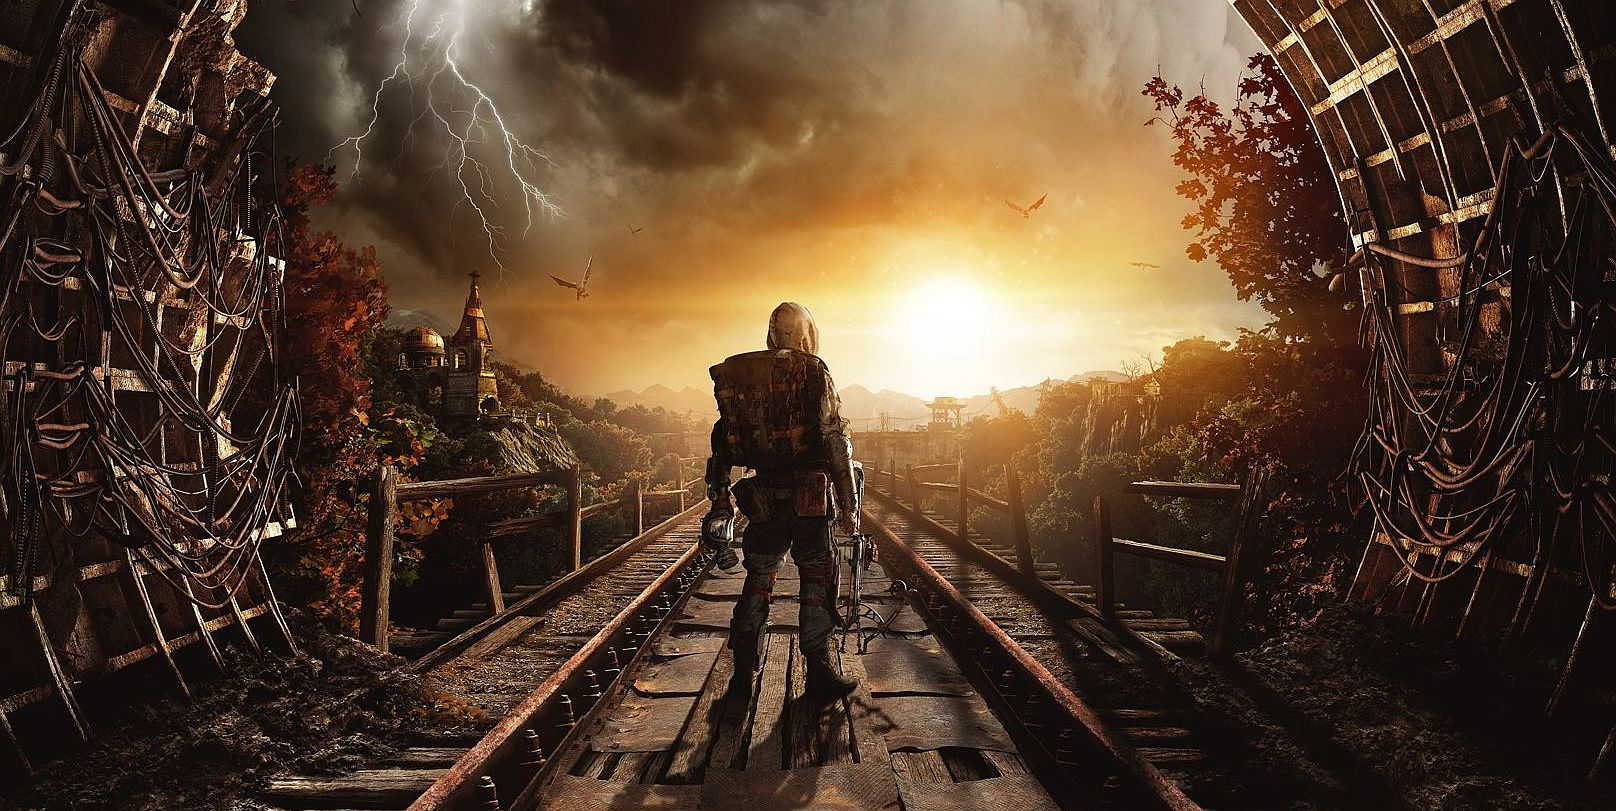 Metro Exodus Expansion Pass content detailed, first DLC drop lands this summer